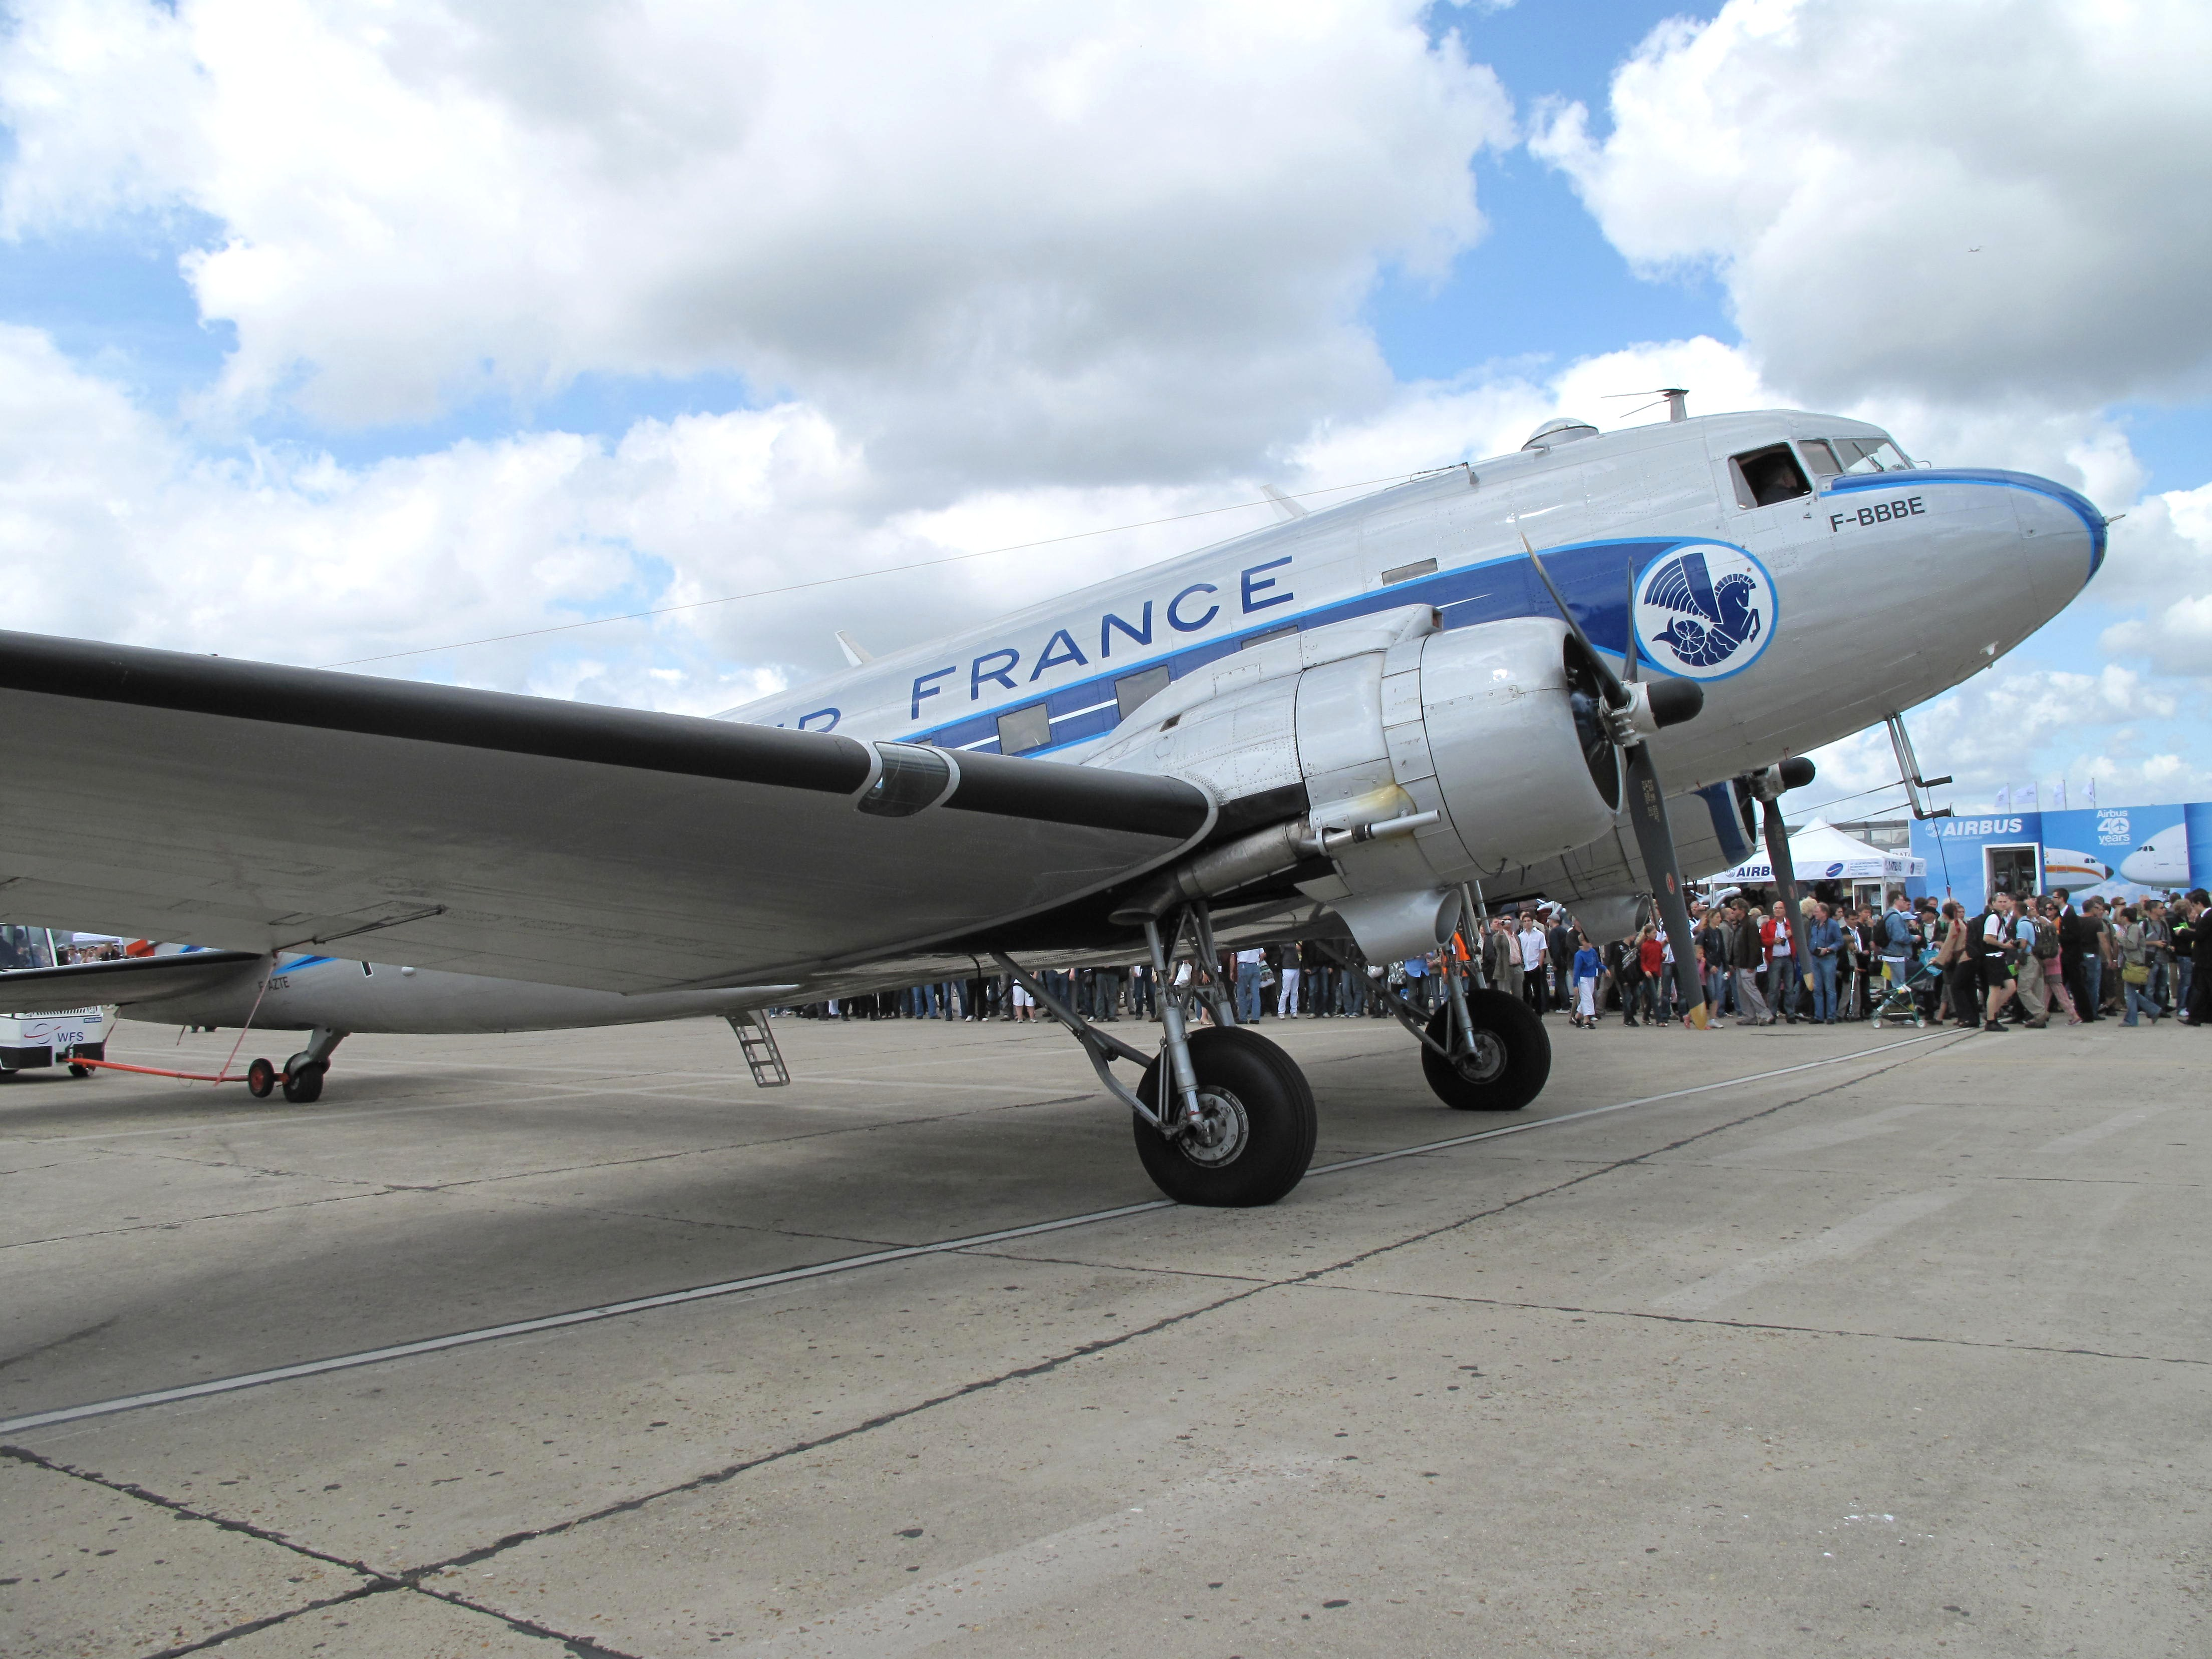 File:DC-3 Air France nose.jpg - Wikimedia Commons